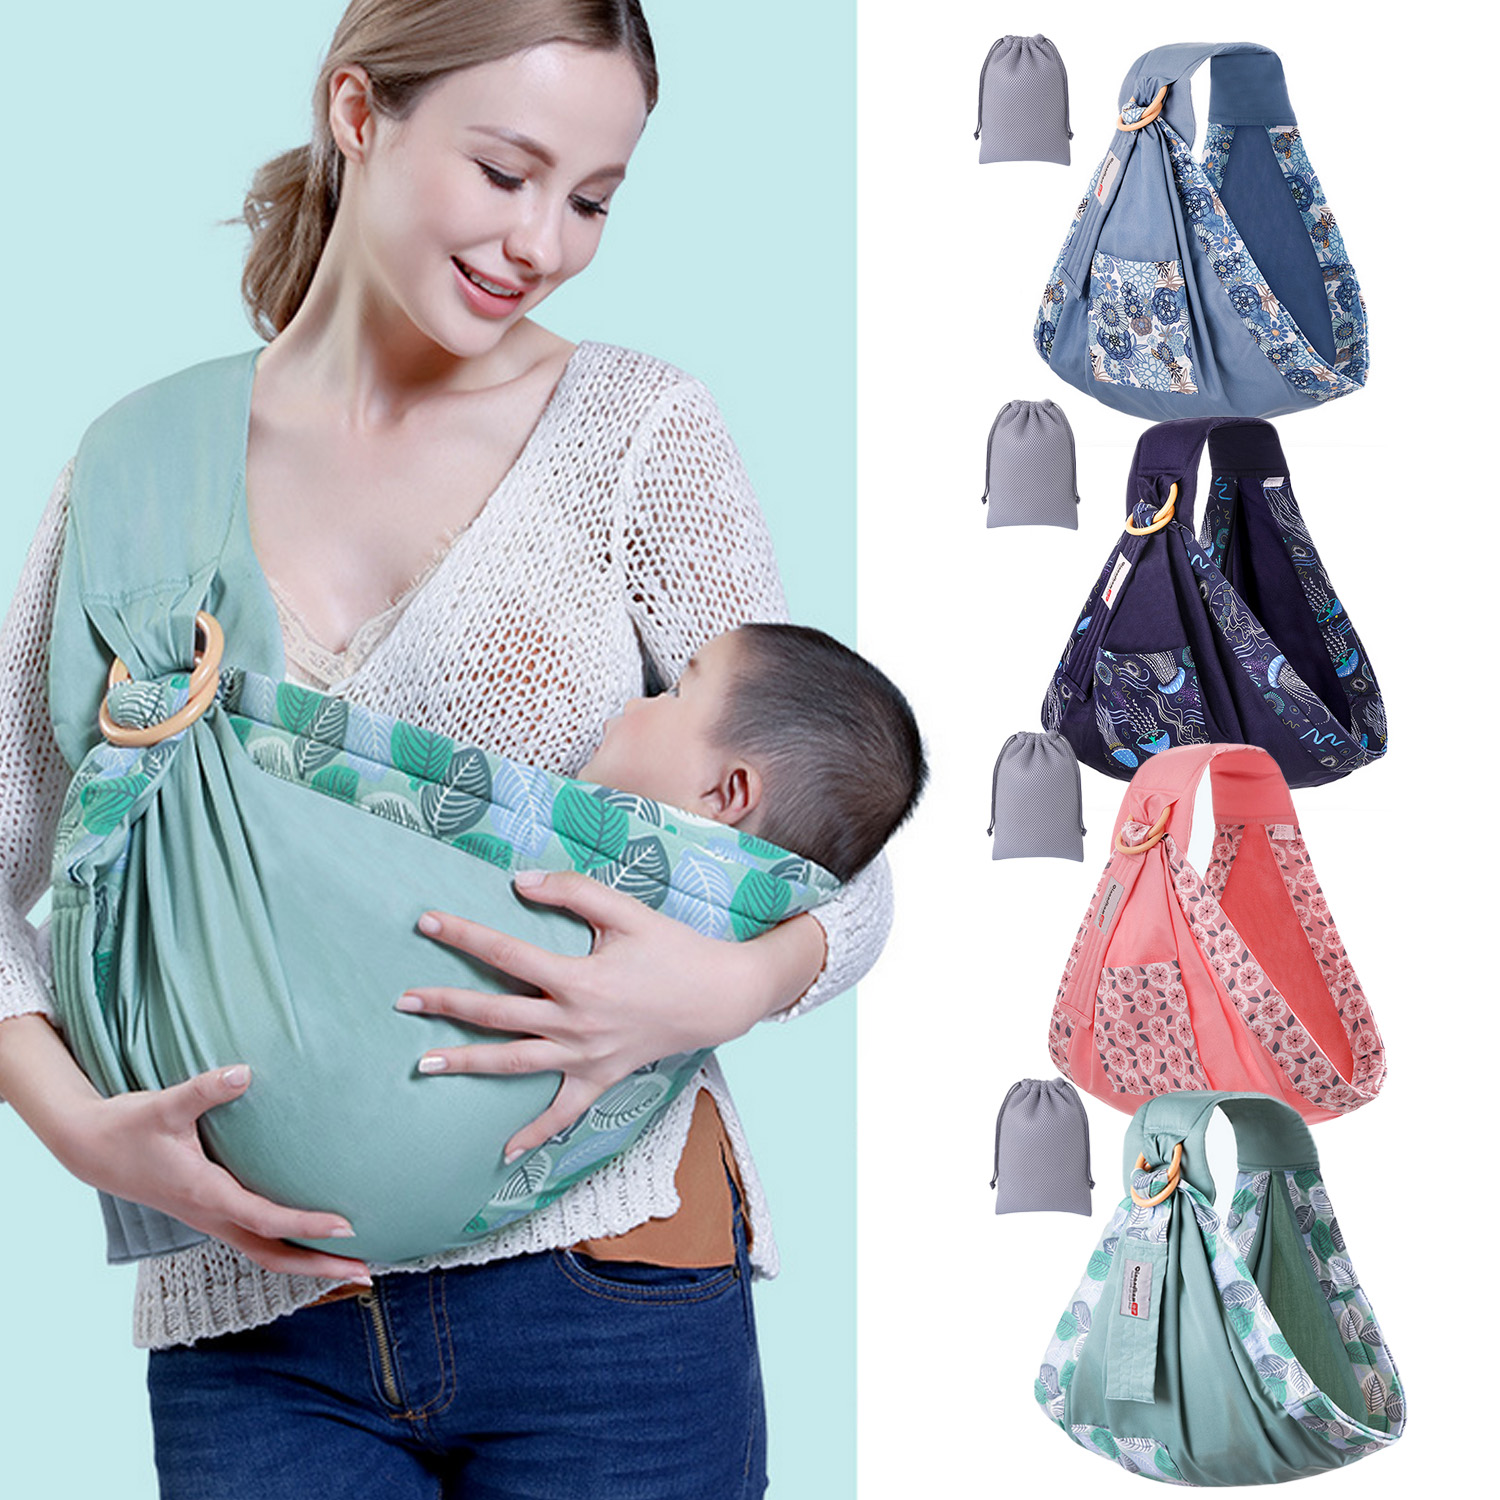 Portable Adjustable Breathable Soft Cotton Baby Sling Wrap Carrier With Storage Bag For Newborn Toddlers Infants All Seasons